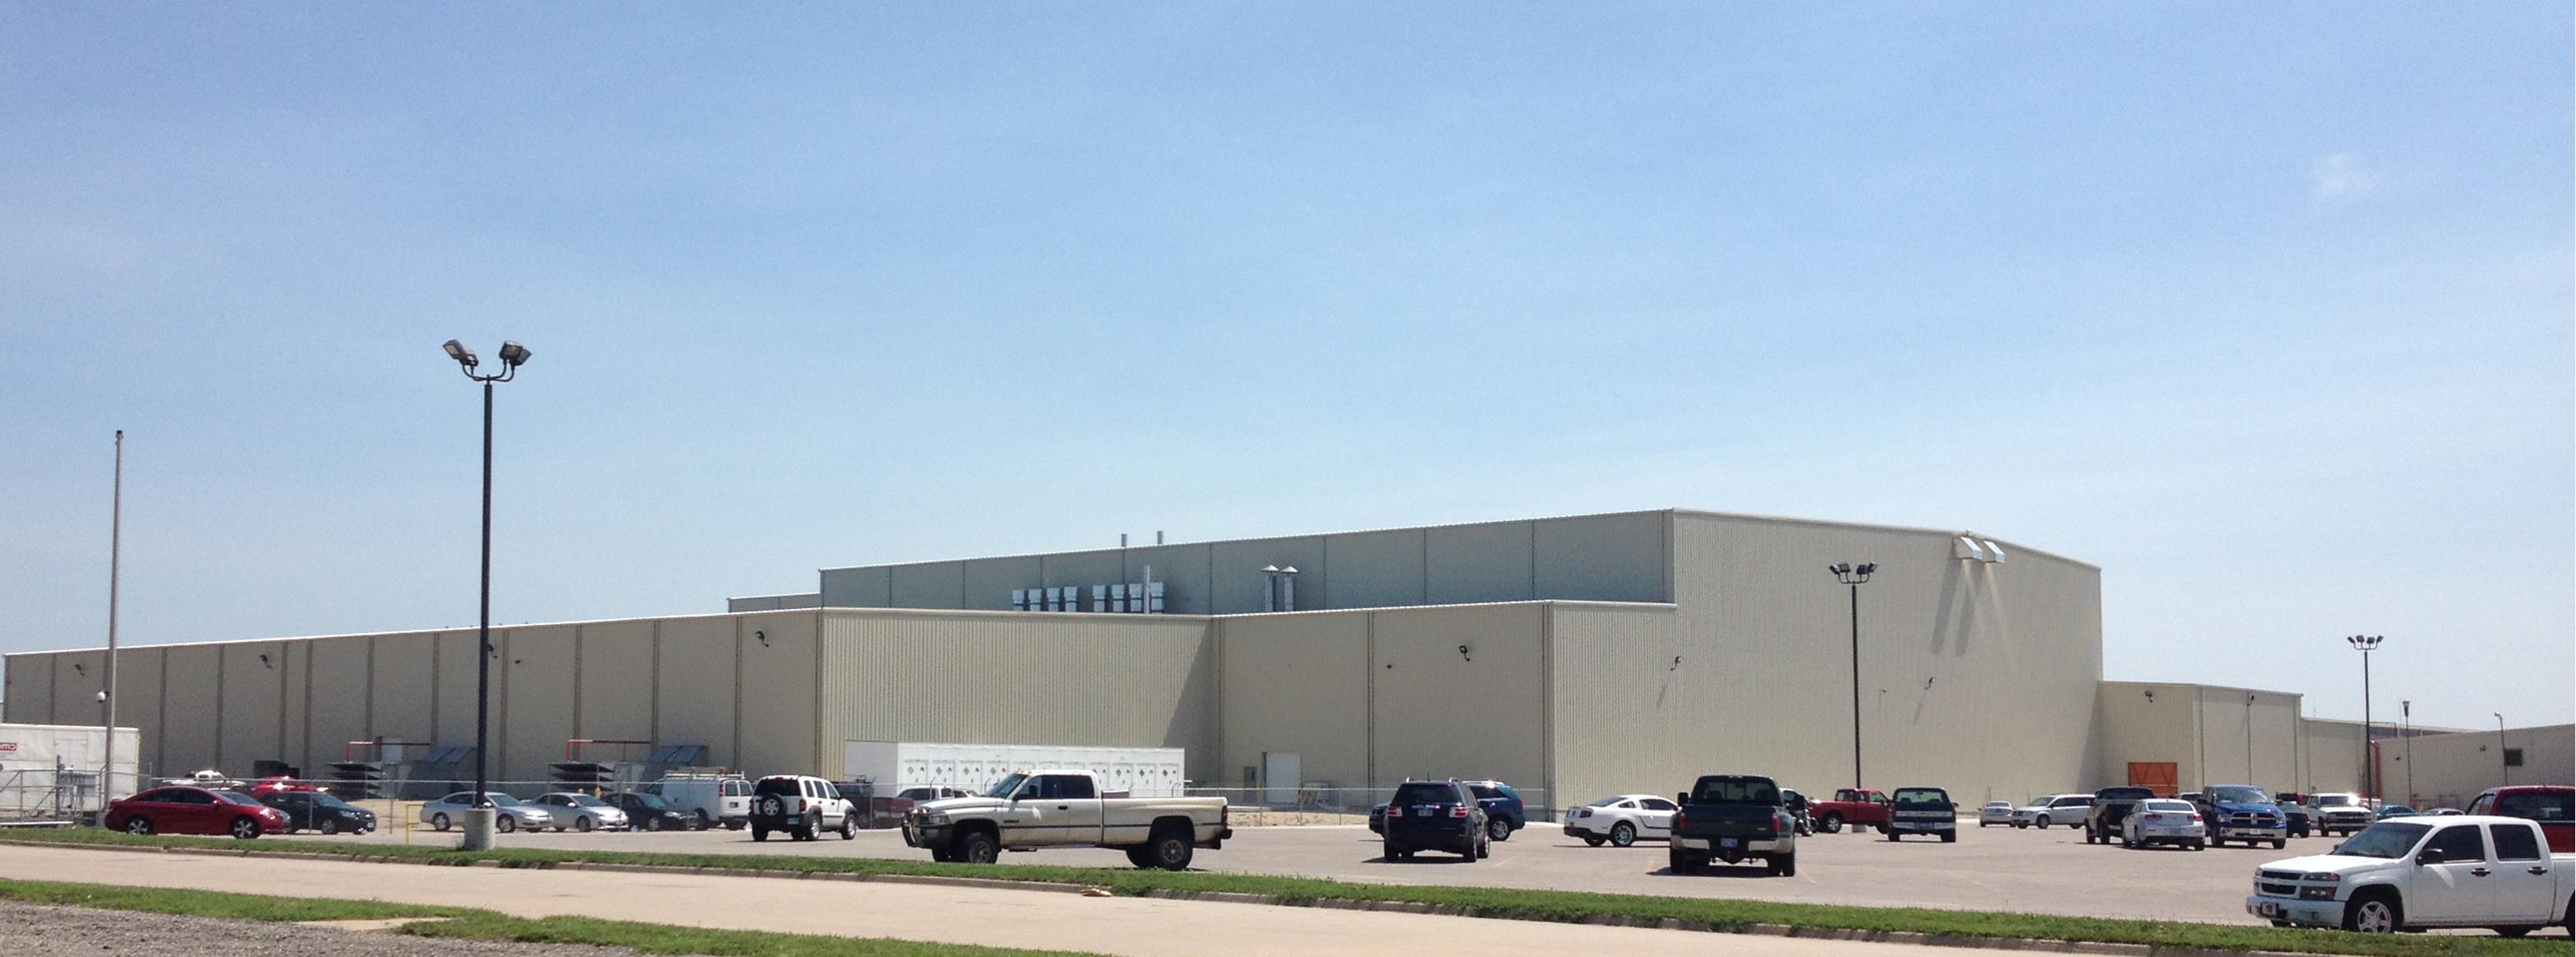 AGCO's new state-of-the-art paint facility, opened July 2013. As the county's largest manufacturer and one of the region's largest employers, they provide jobs to over 1480 individuals.